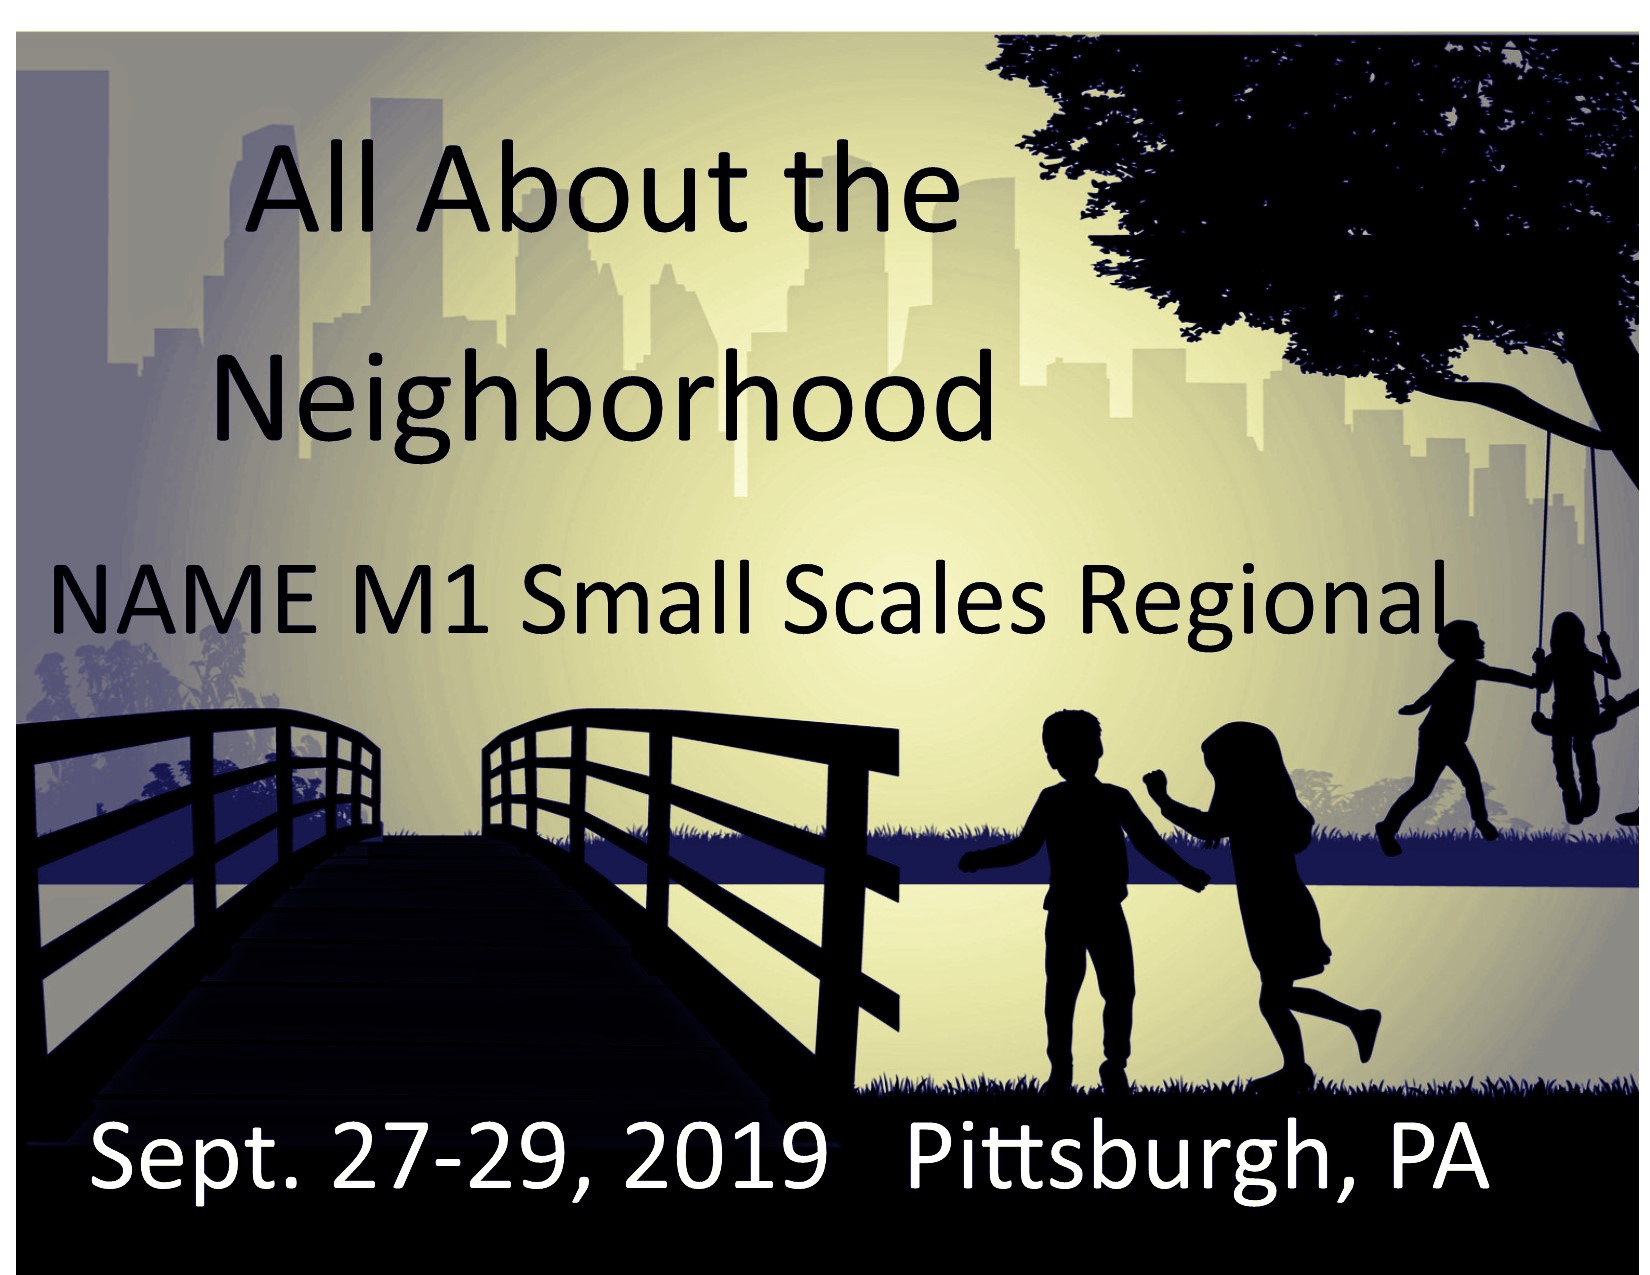 2019 Pittsburgh Small Scales Houseparty | National Association of